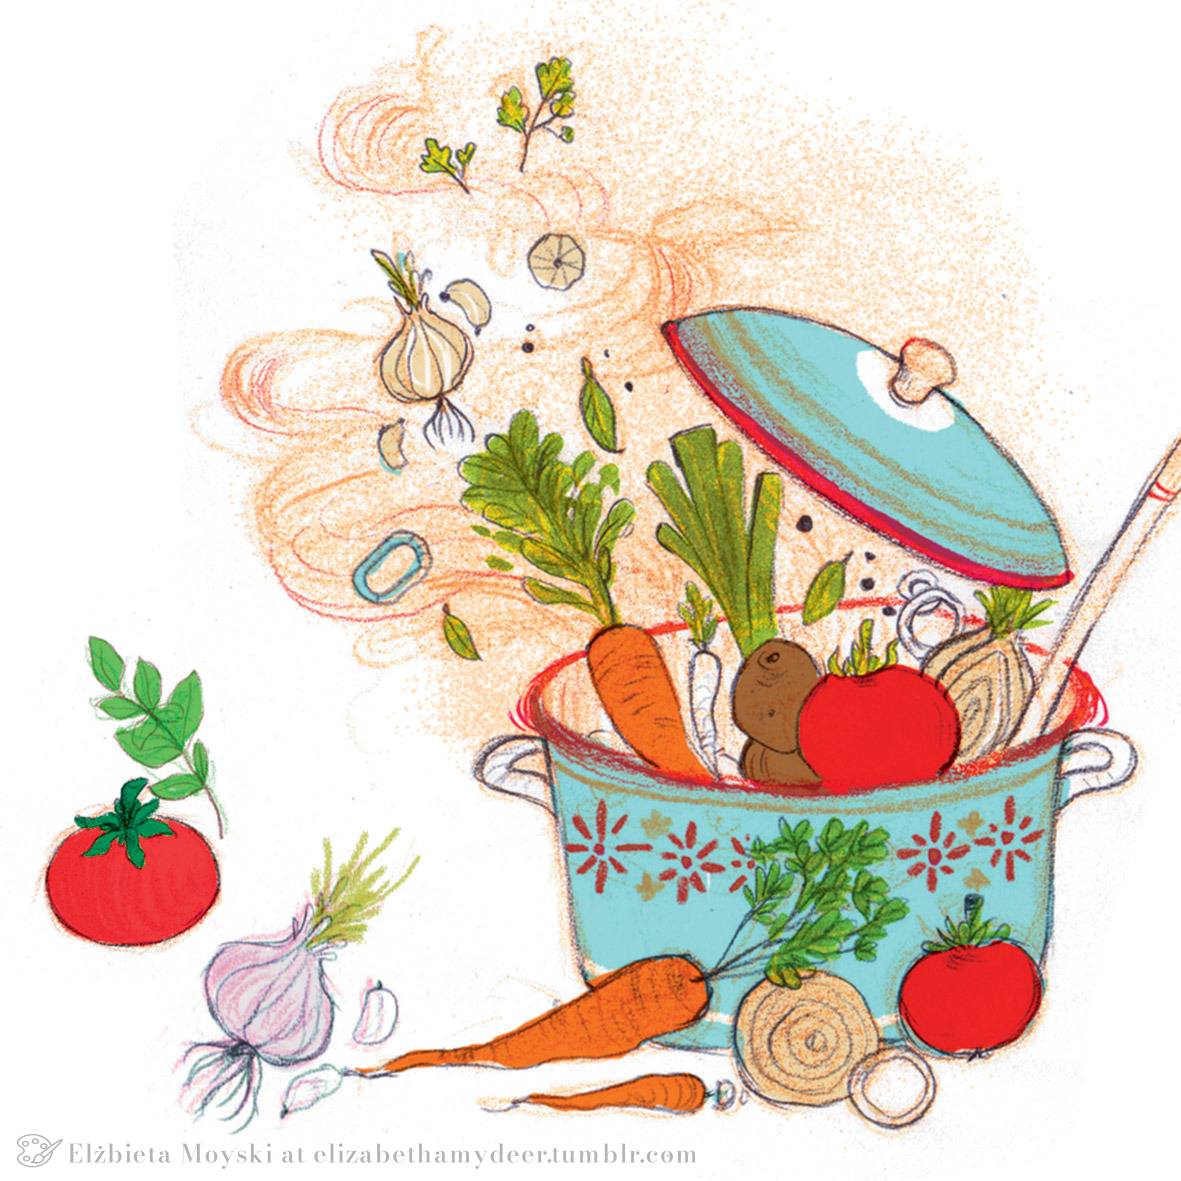 elizabetha moyski cooking illustration.png